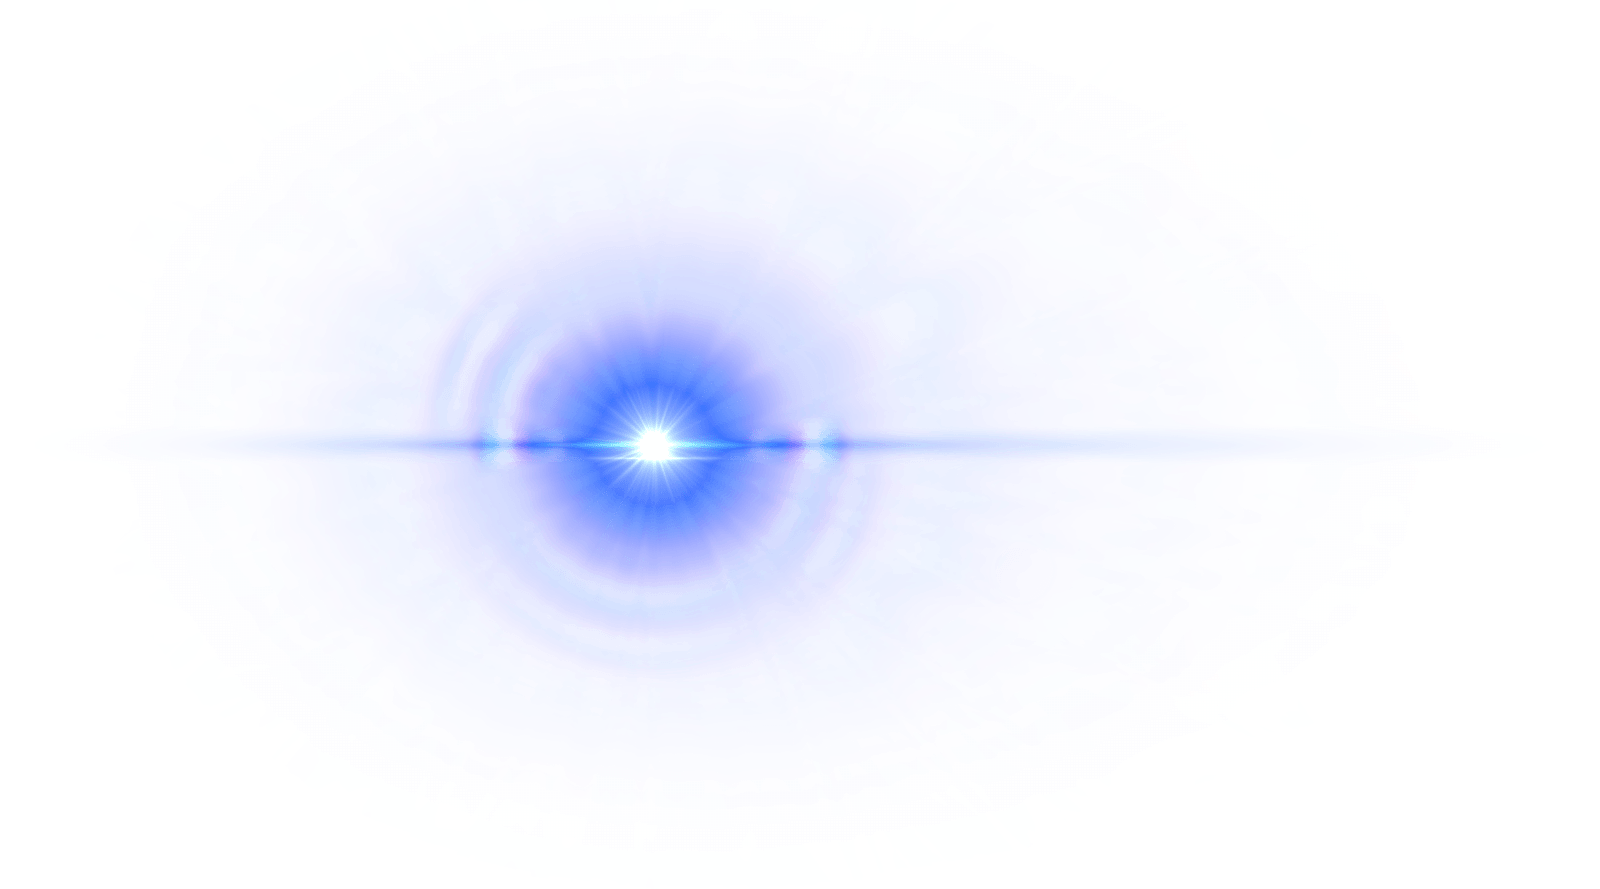 Blue glare png. Collection of free flared